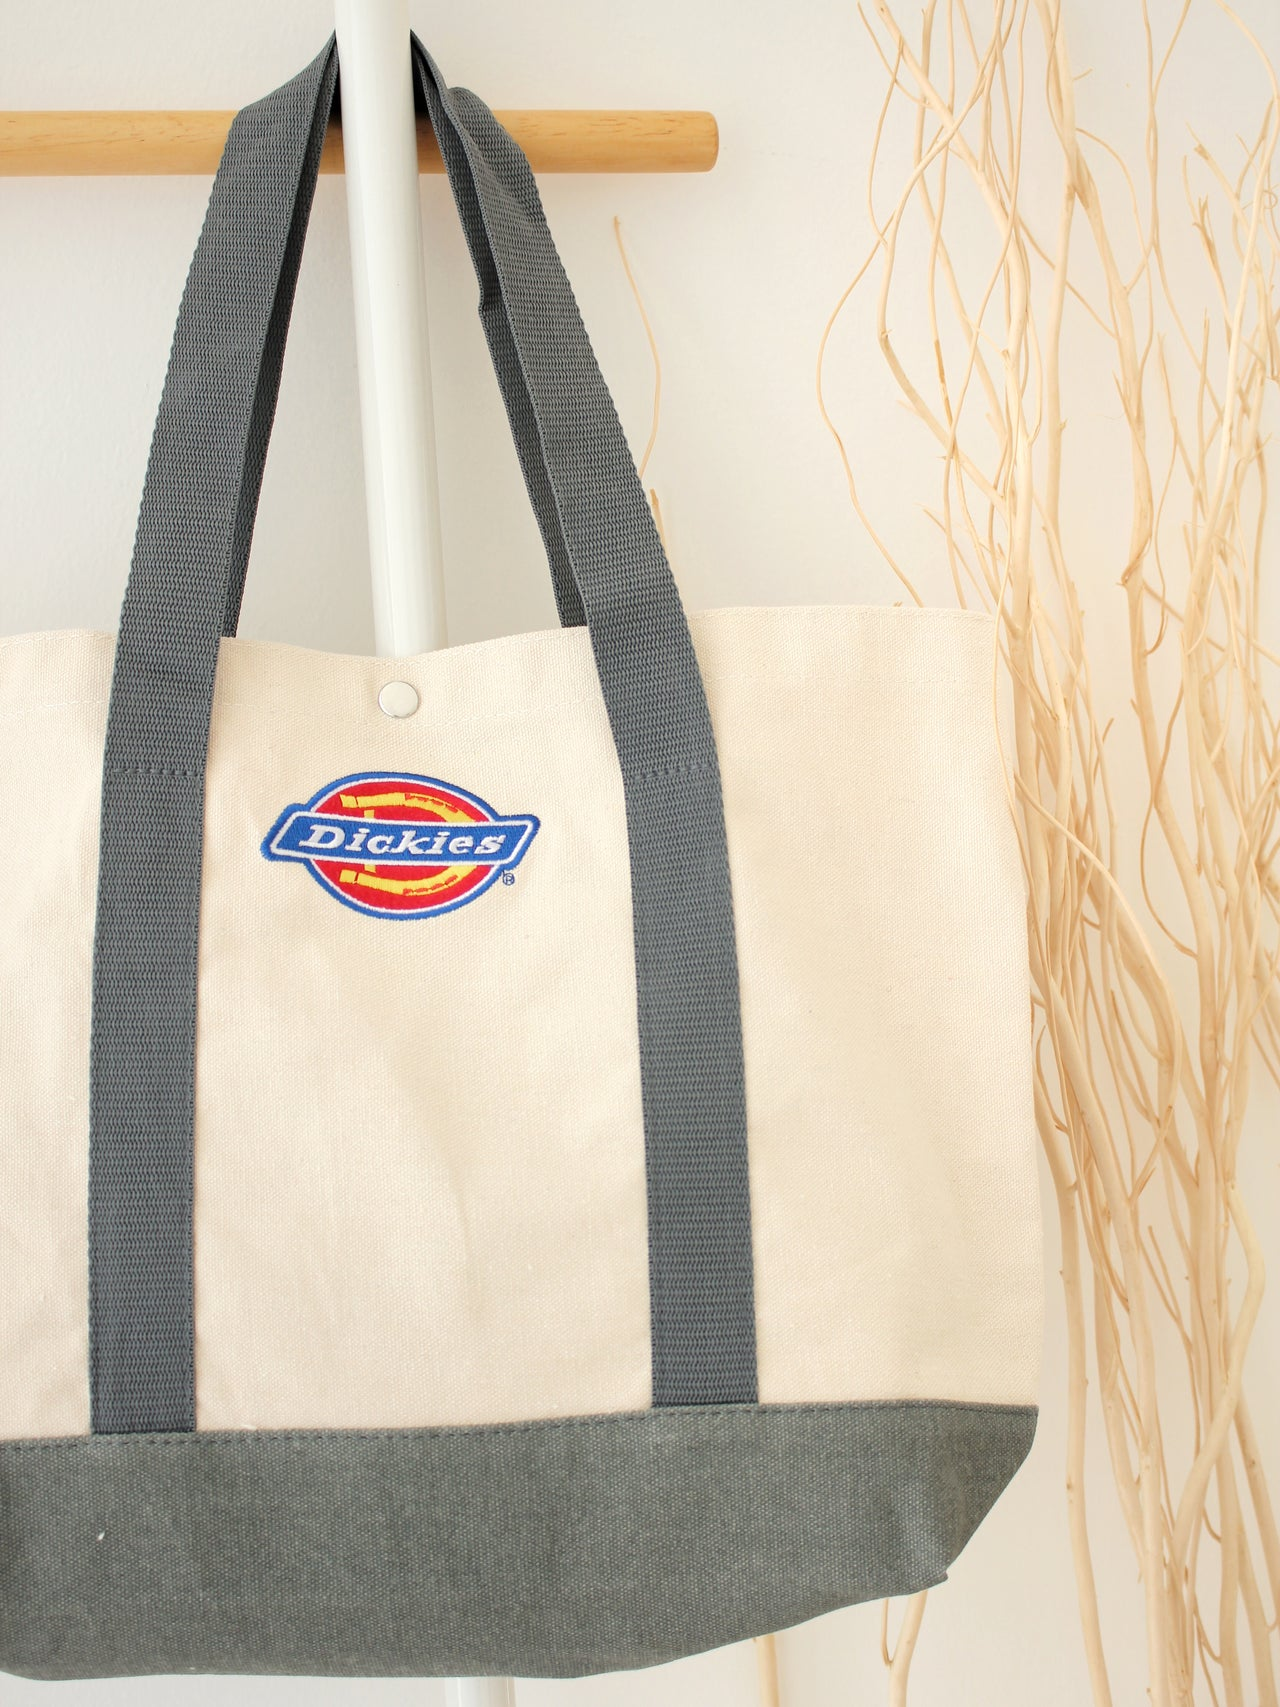 Dickes Tote Bag - LovelyMadness Clothing Online Fashion Malaysia